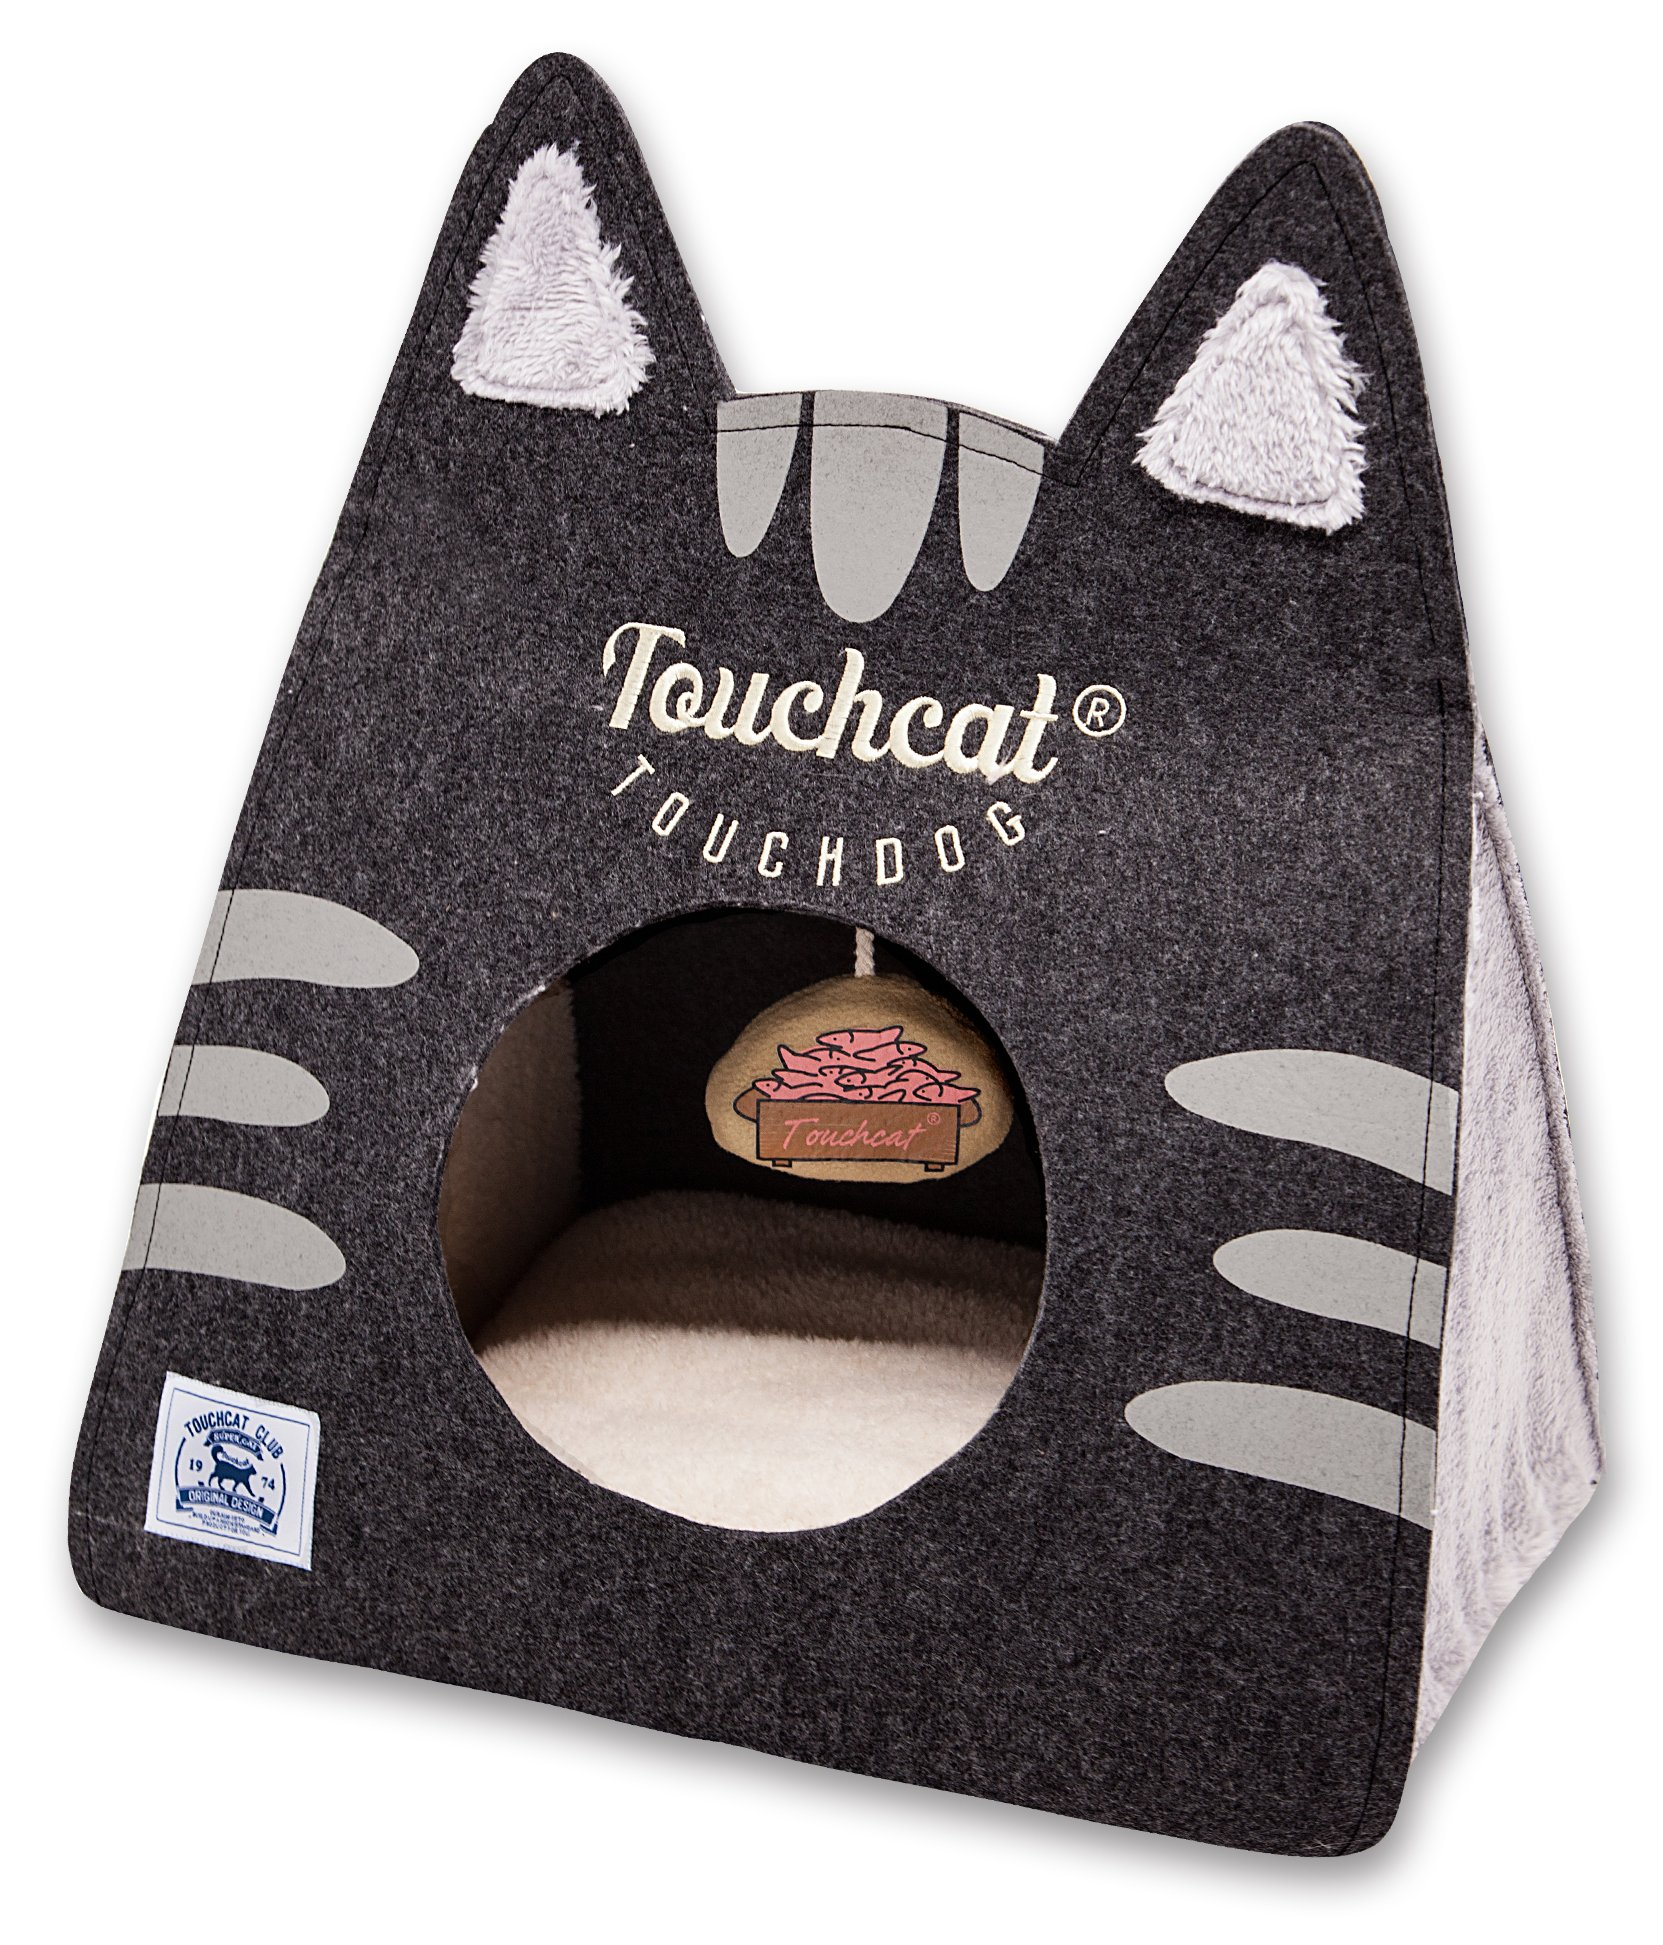 Touchcat Kitty Ears' Travel On-The-Go Folding Designer Fashion Pet Cat Bed House w/Hanging Teaser Toy, Large, Black